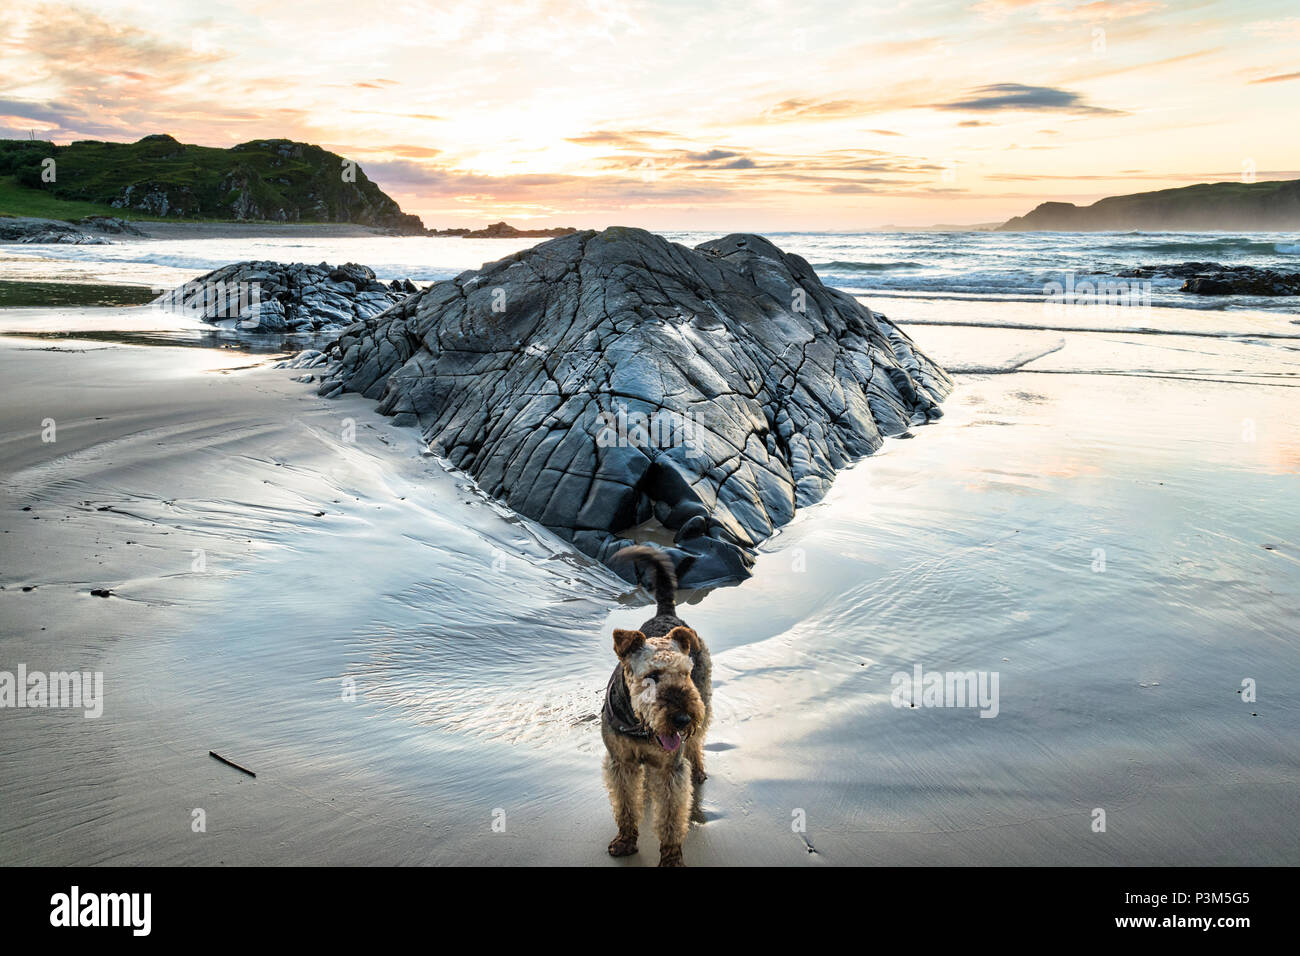 Picture of an Airedale Terrier on a beach at sunset - Stock Image